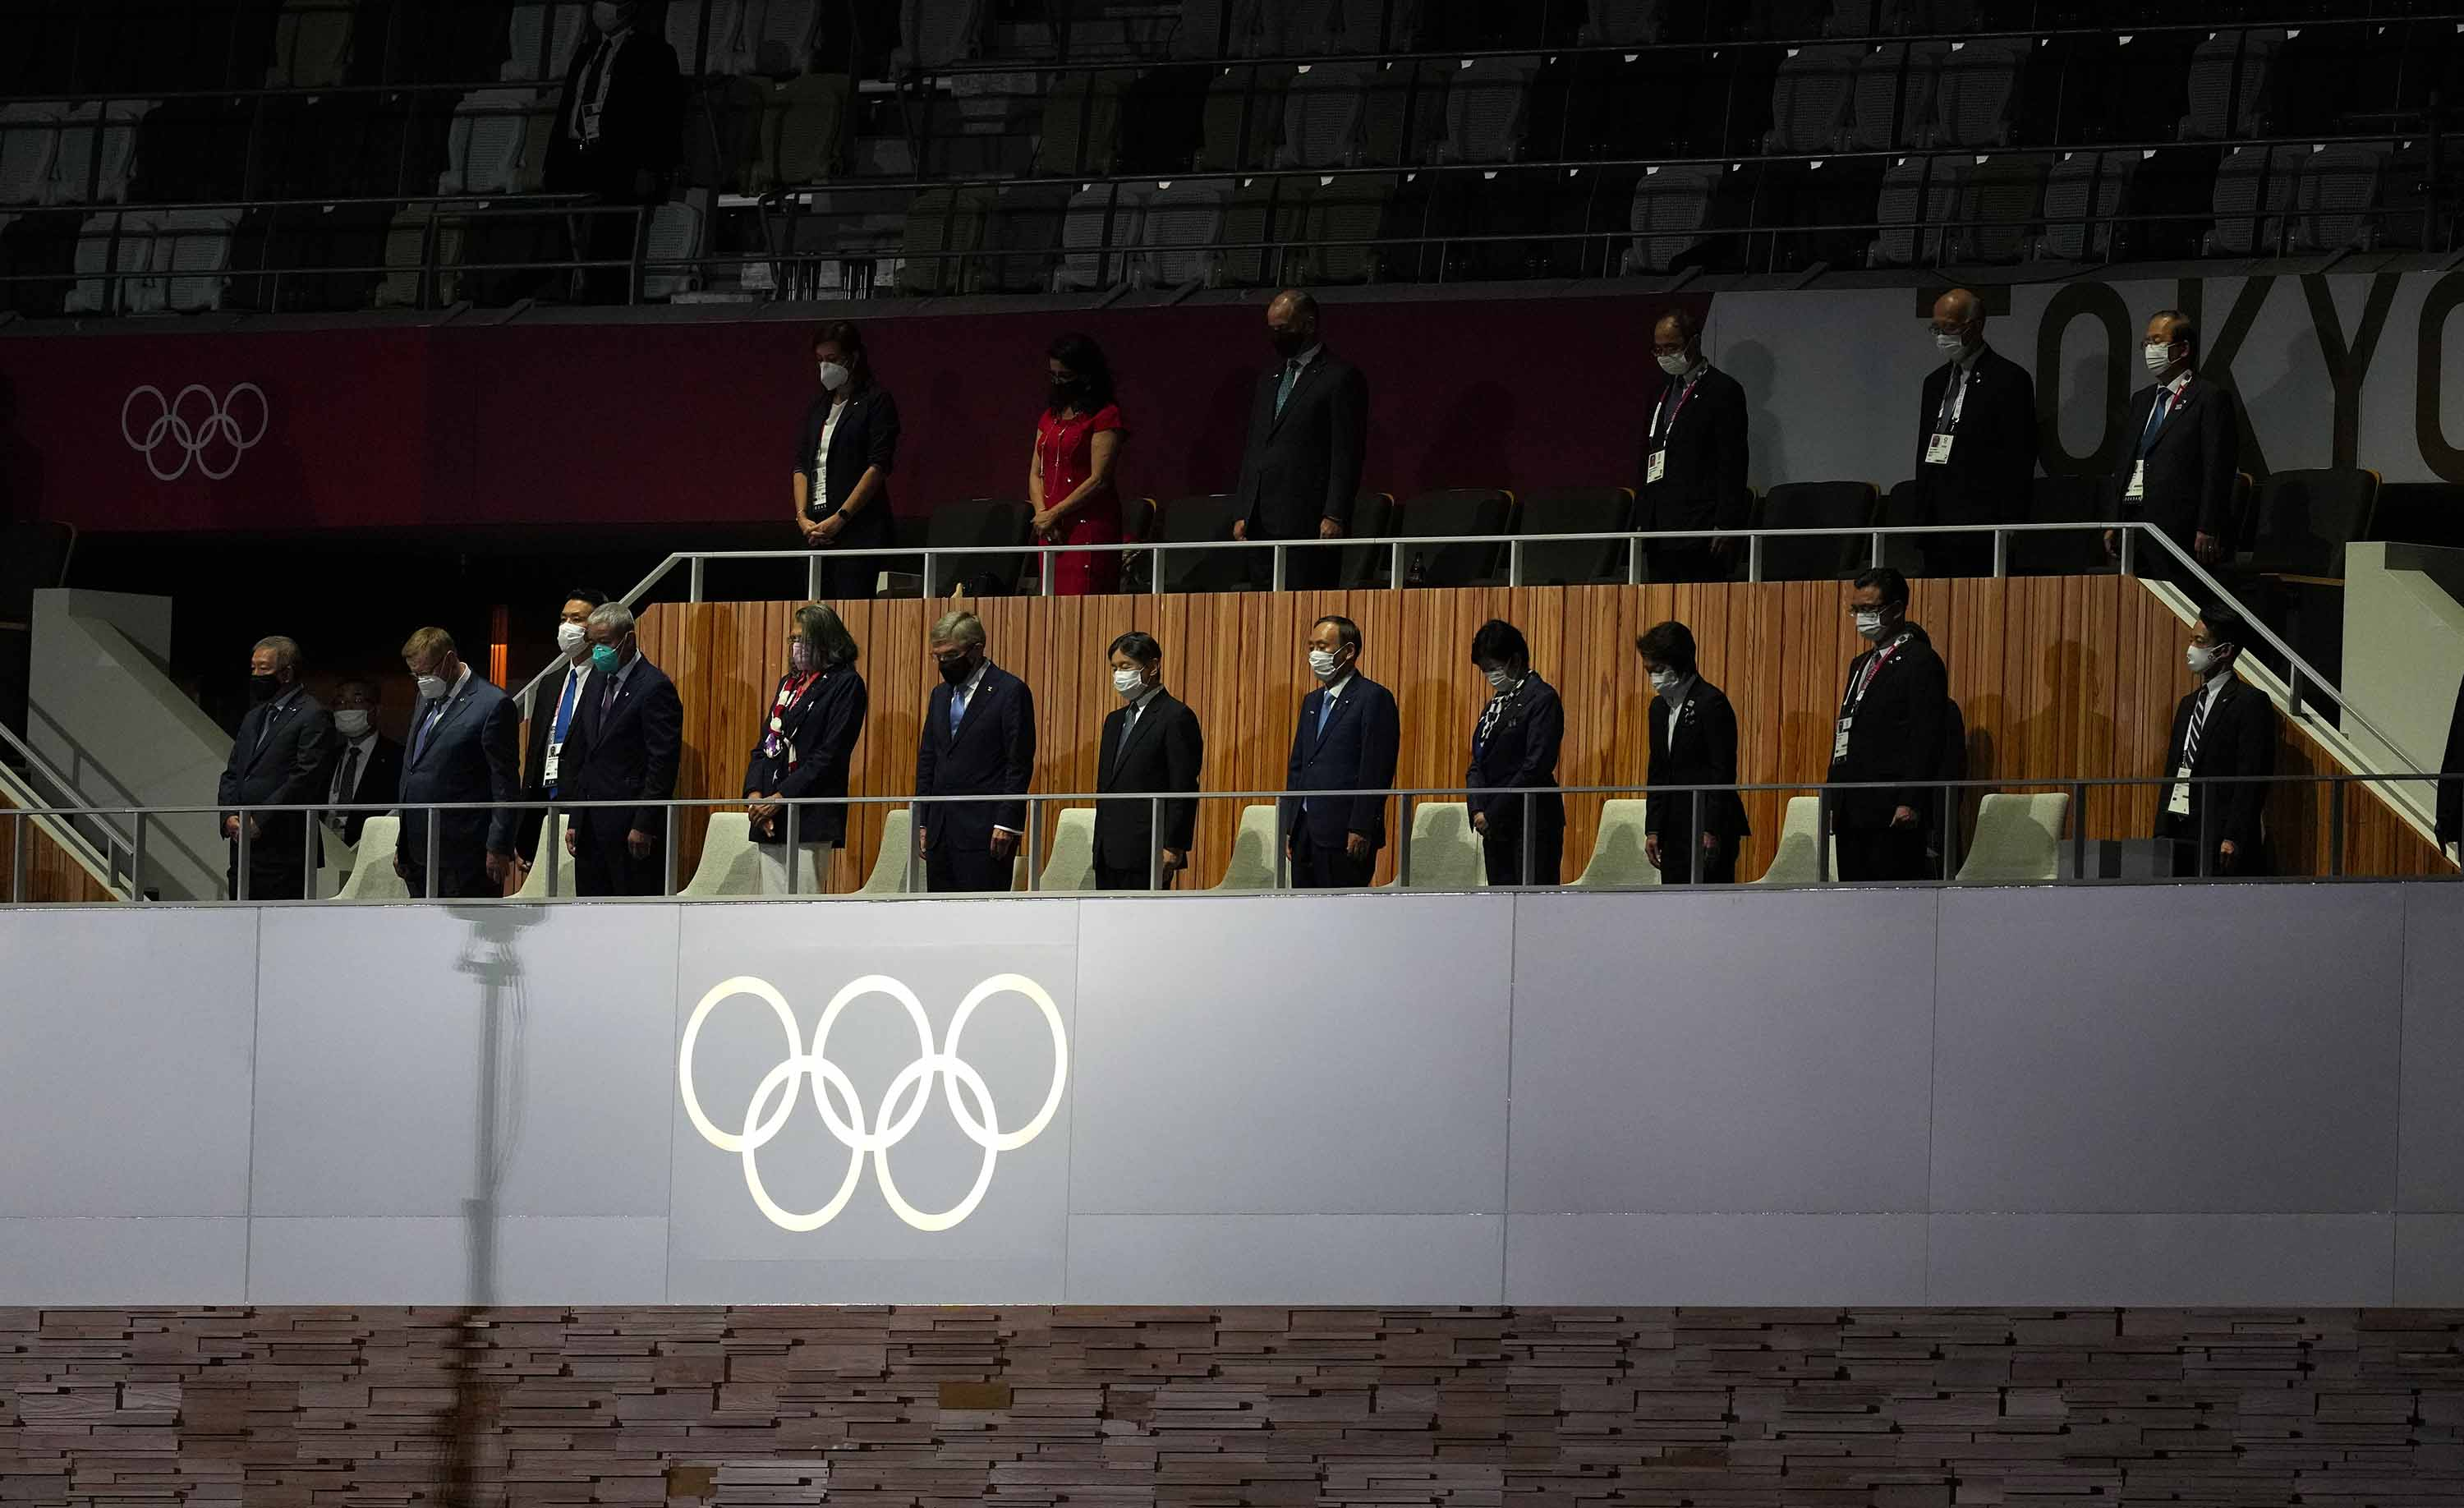 Japan's Emperor Naruhito, IOC president Thomas Bach and other delegates stand for a moments silence during the opening ceremony.